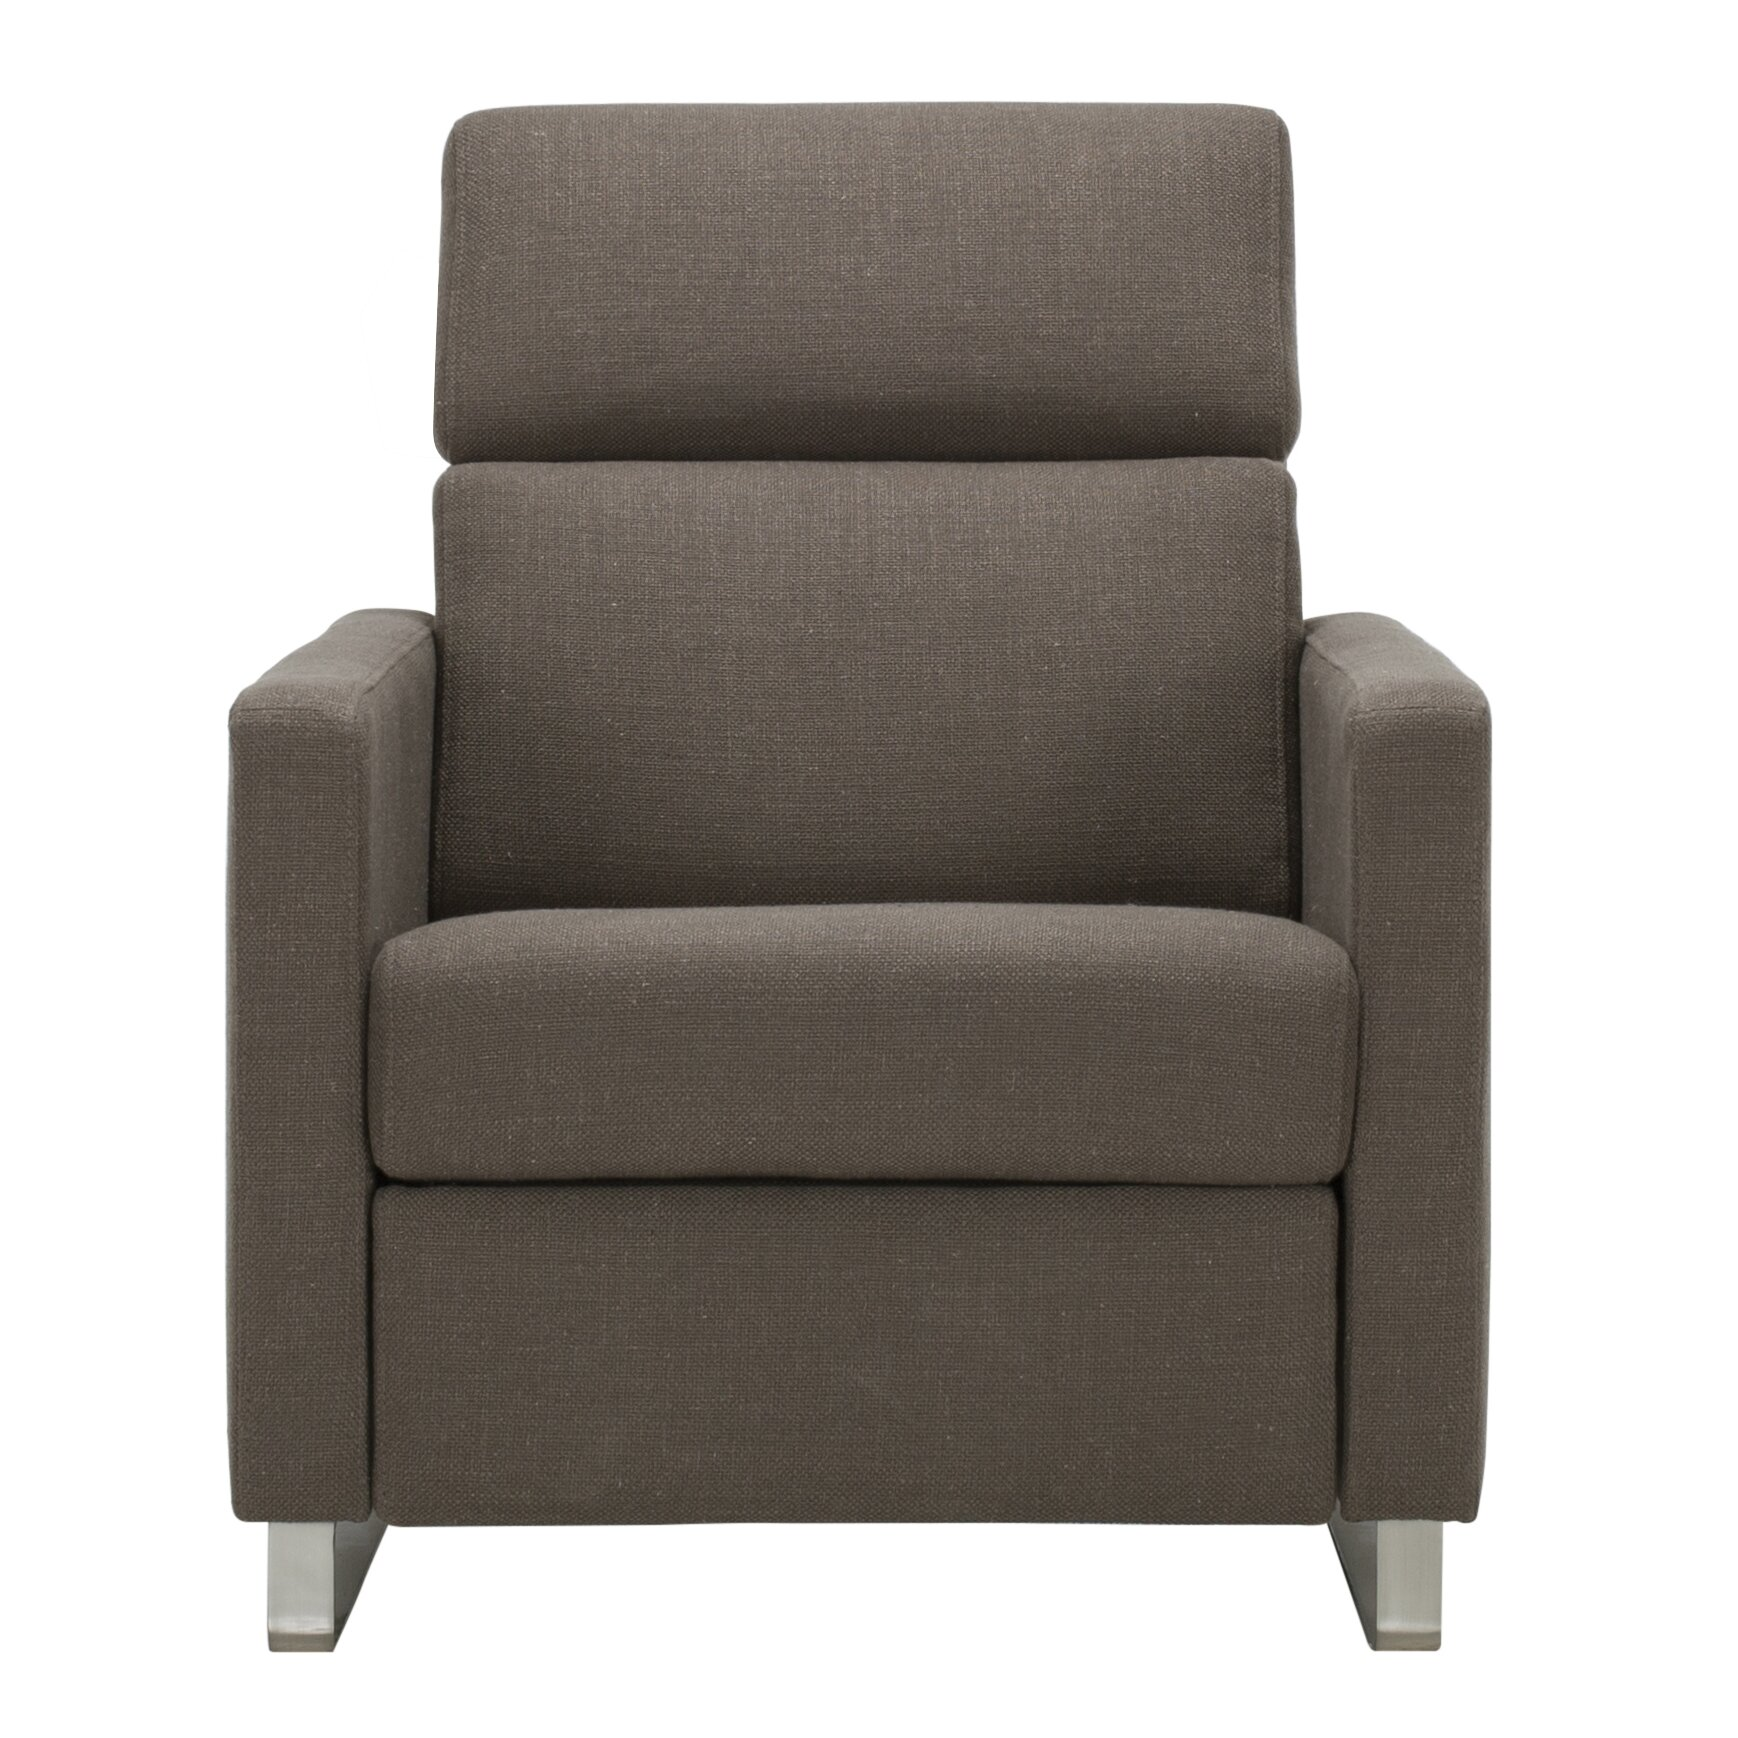 Small Bedroom Recliners Modern Recliners Find The Perfect Recliner Chair Allmodern